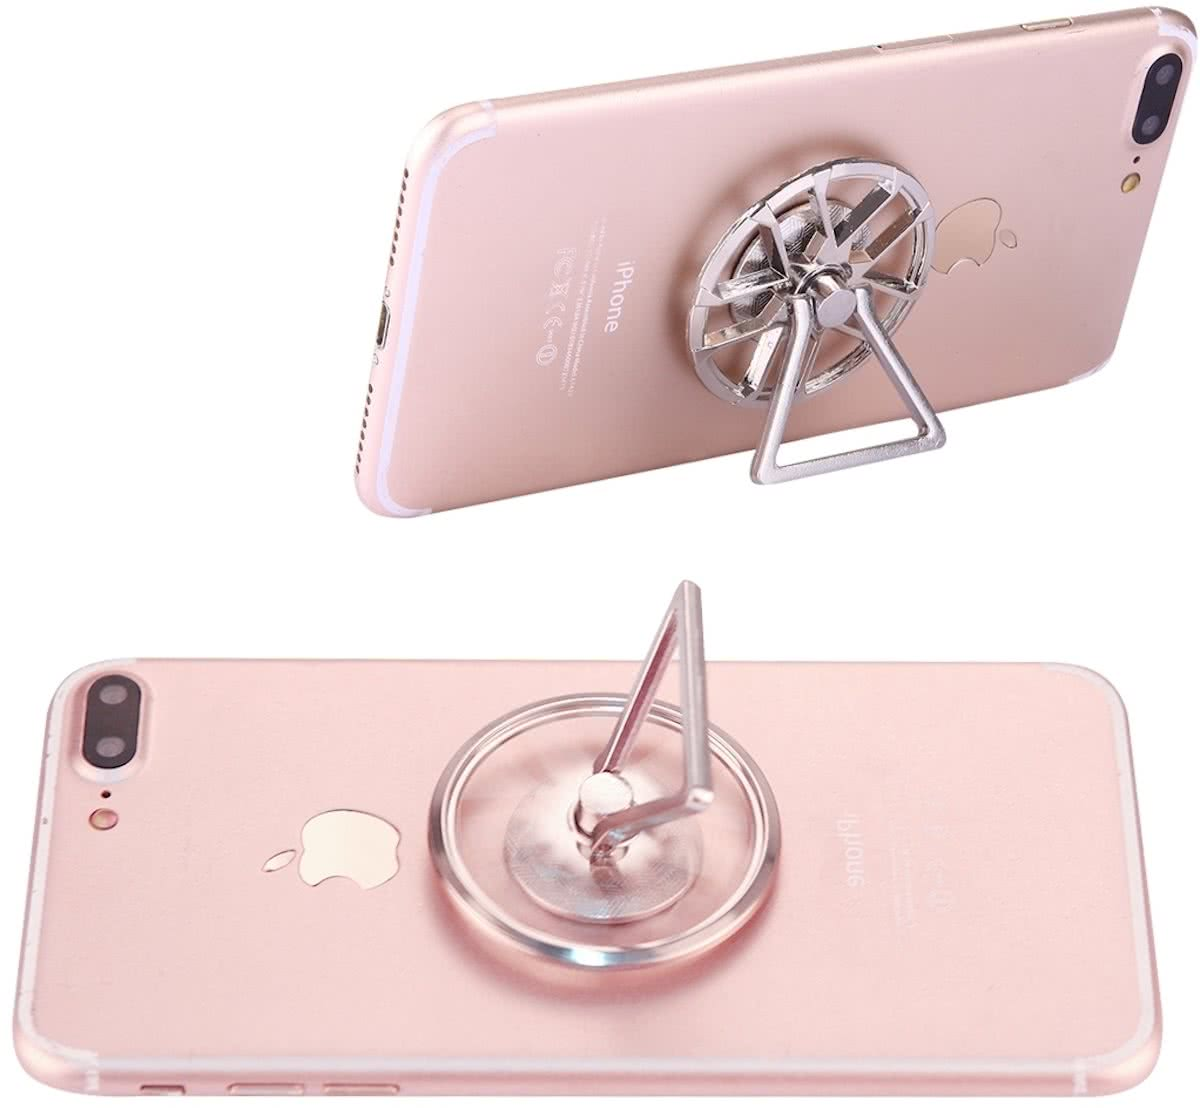 Wheel Shape Phone Triangle houder   Spinner Toy Stress rooducer Anti-Anxiety Toy, About 0.5 Minutes Rotation Time(zilver)